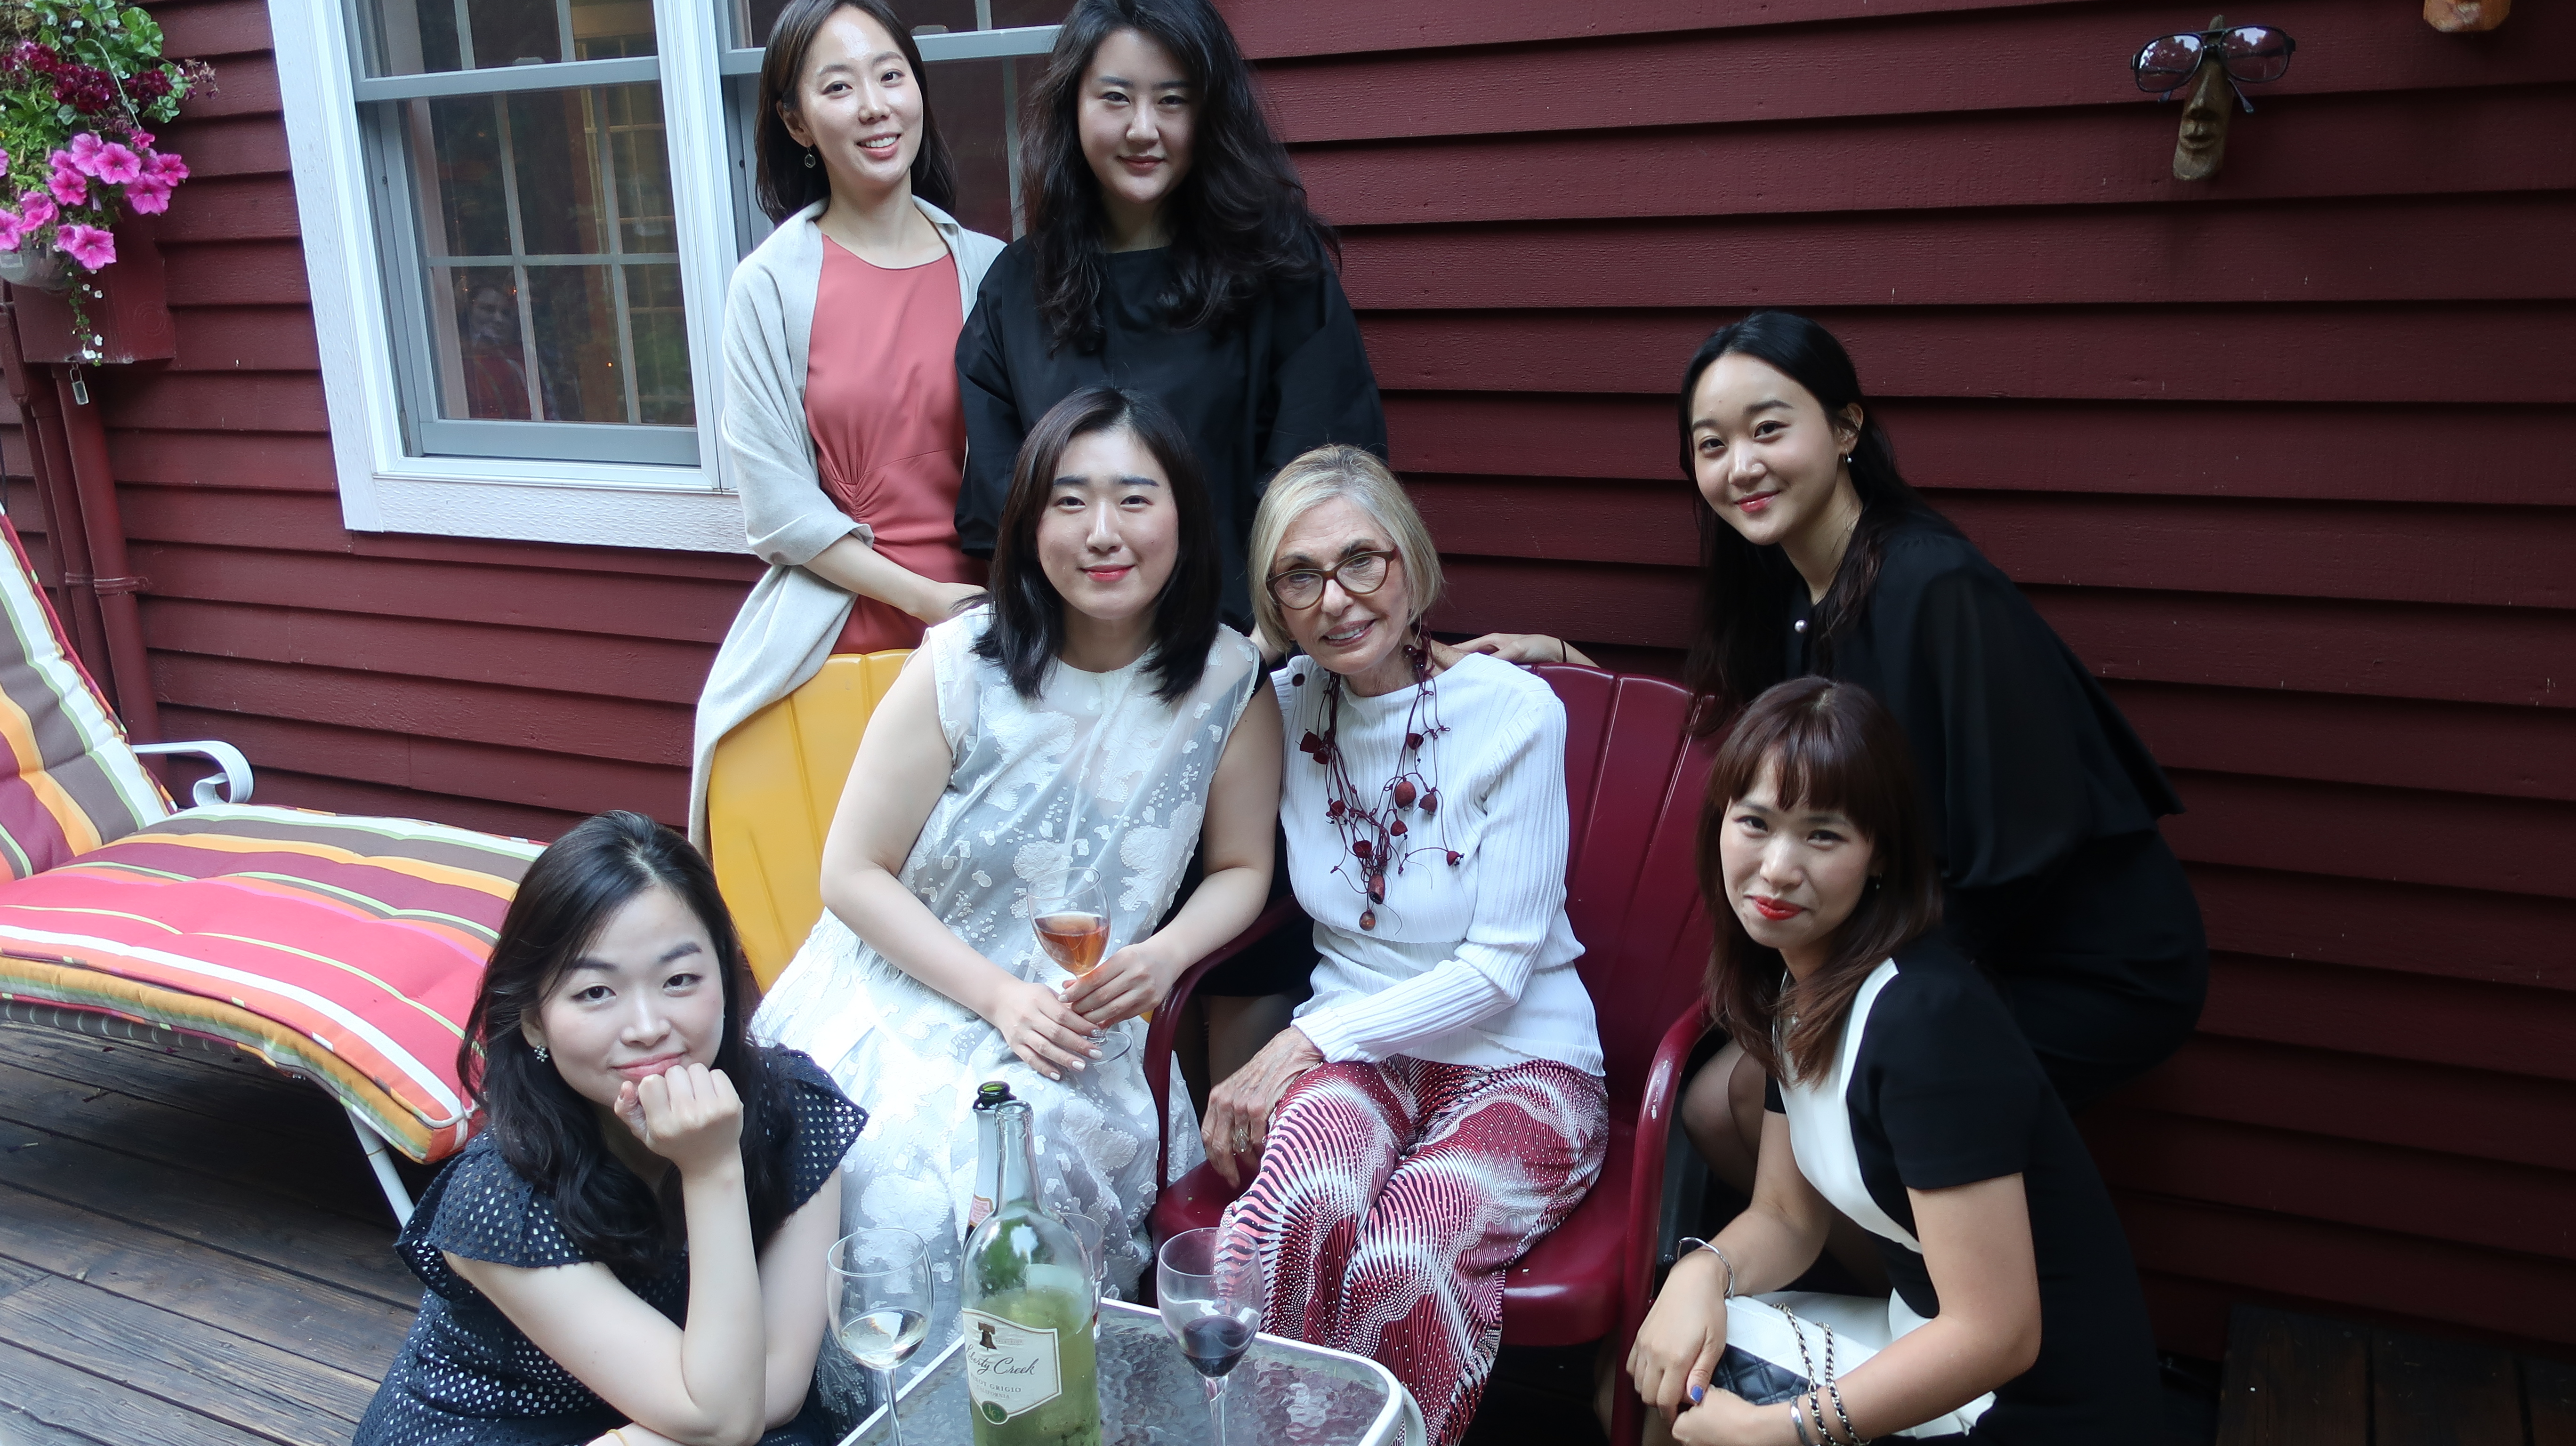 Party at Lees house with Korean students